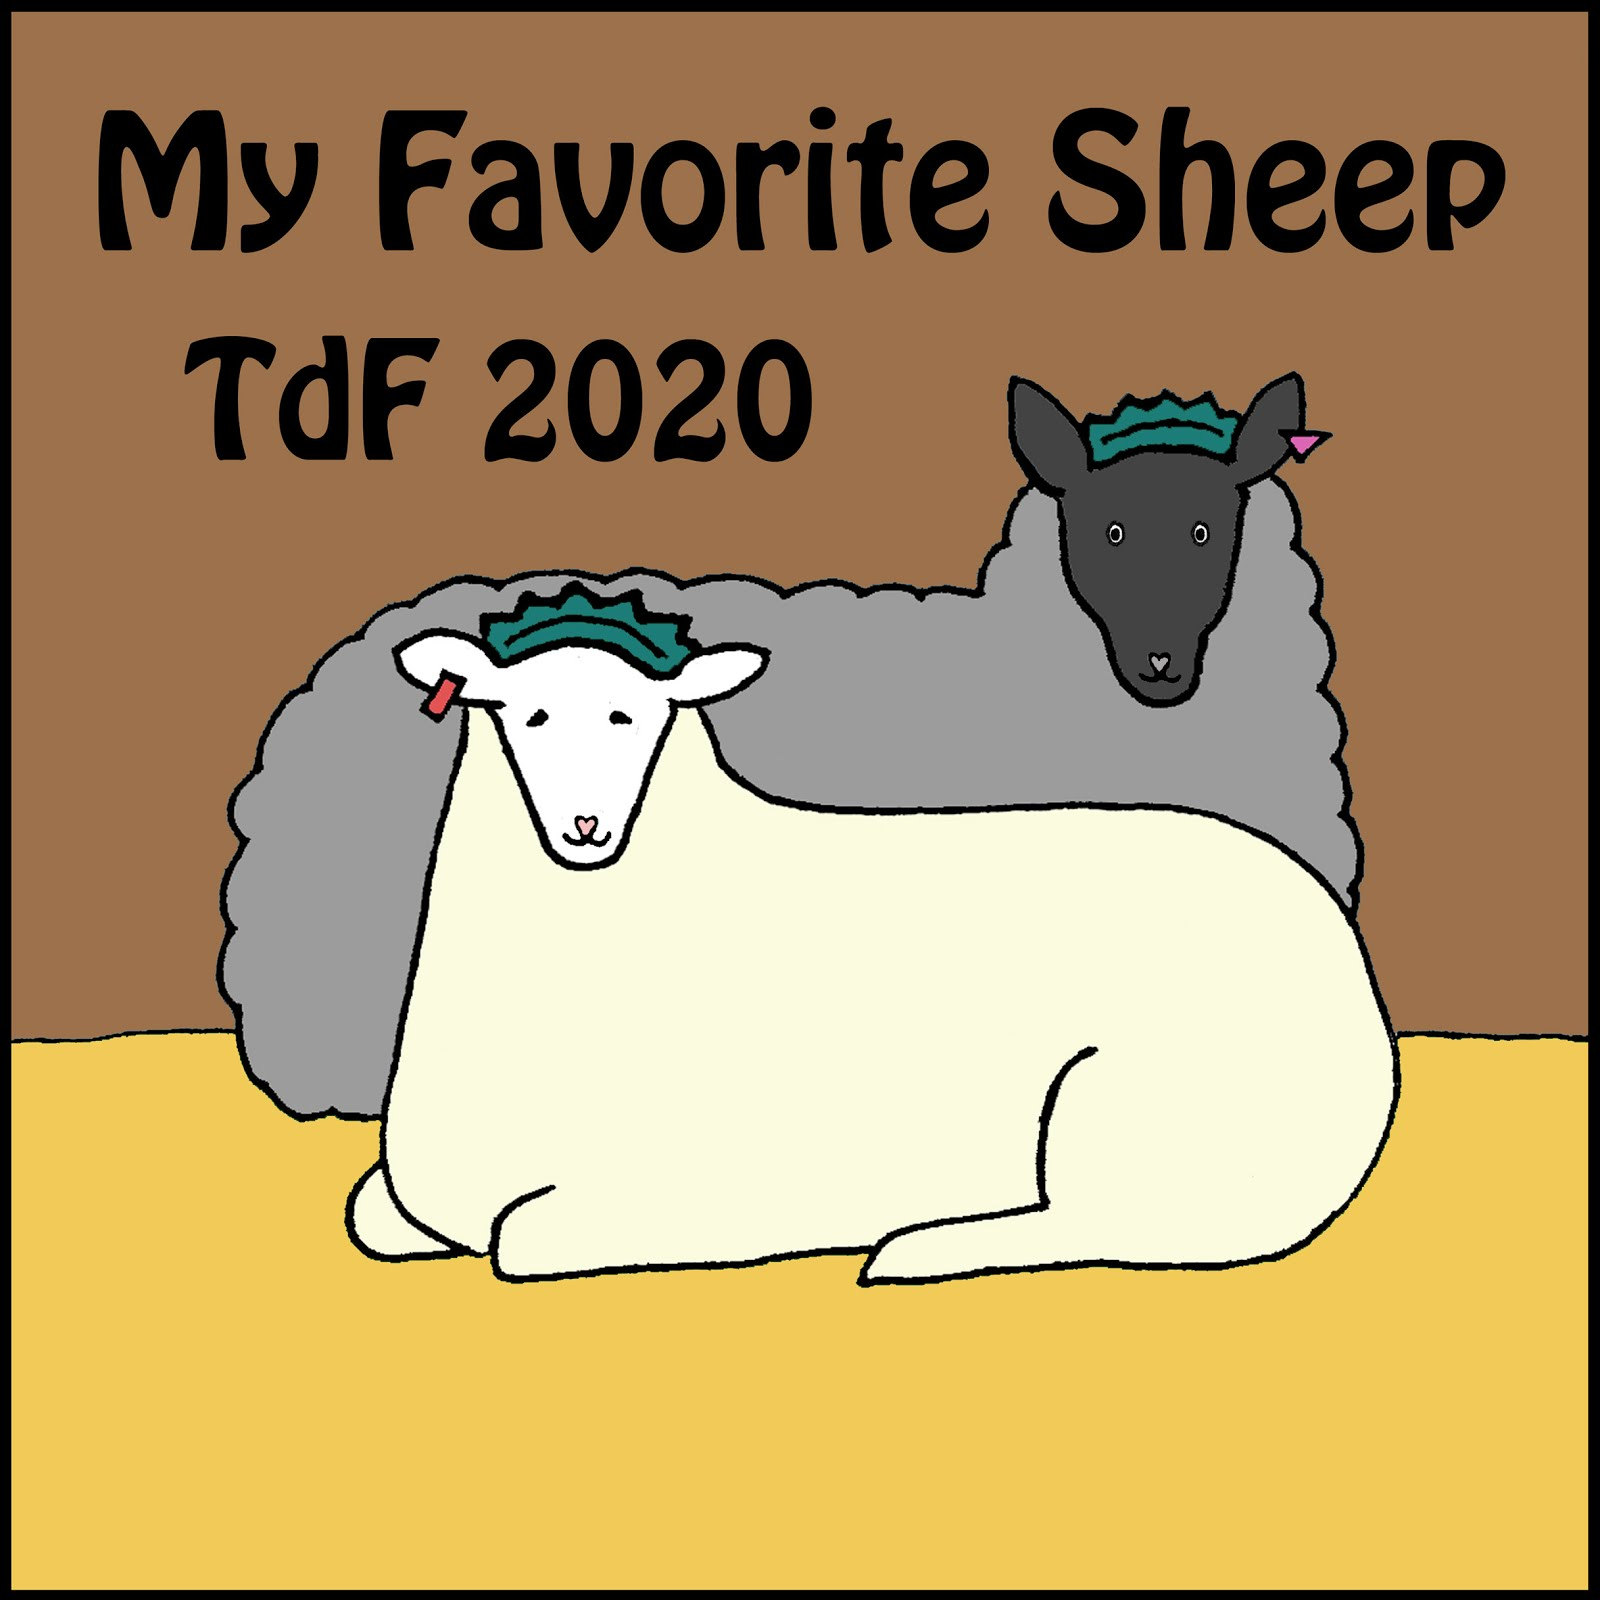 2020 Tour de Fleece